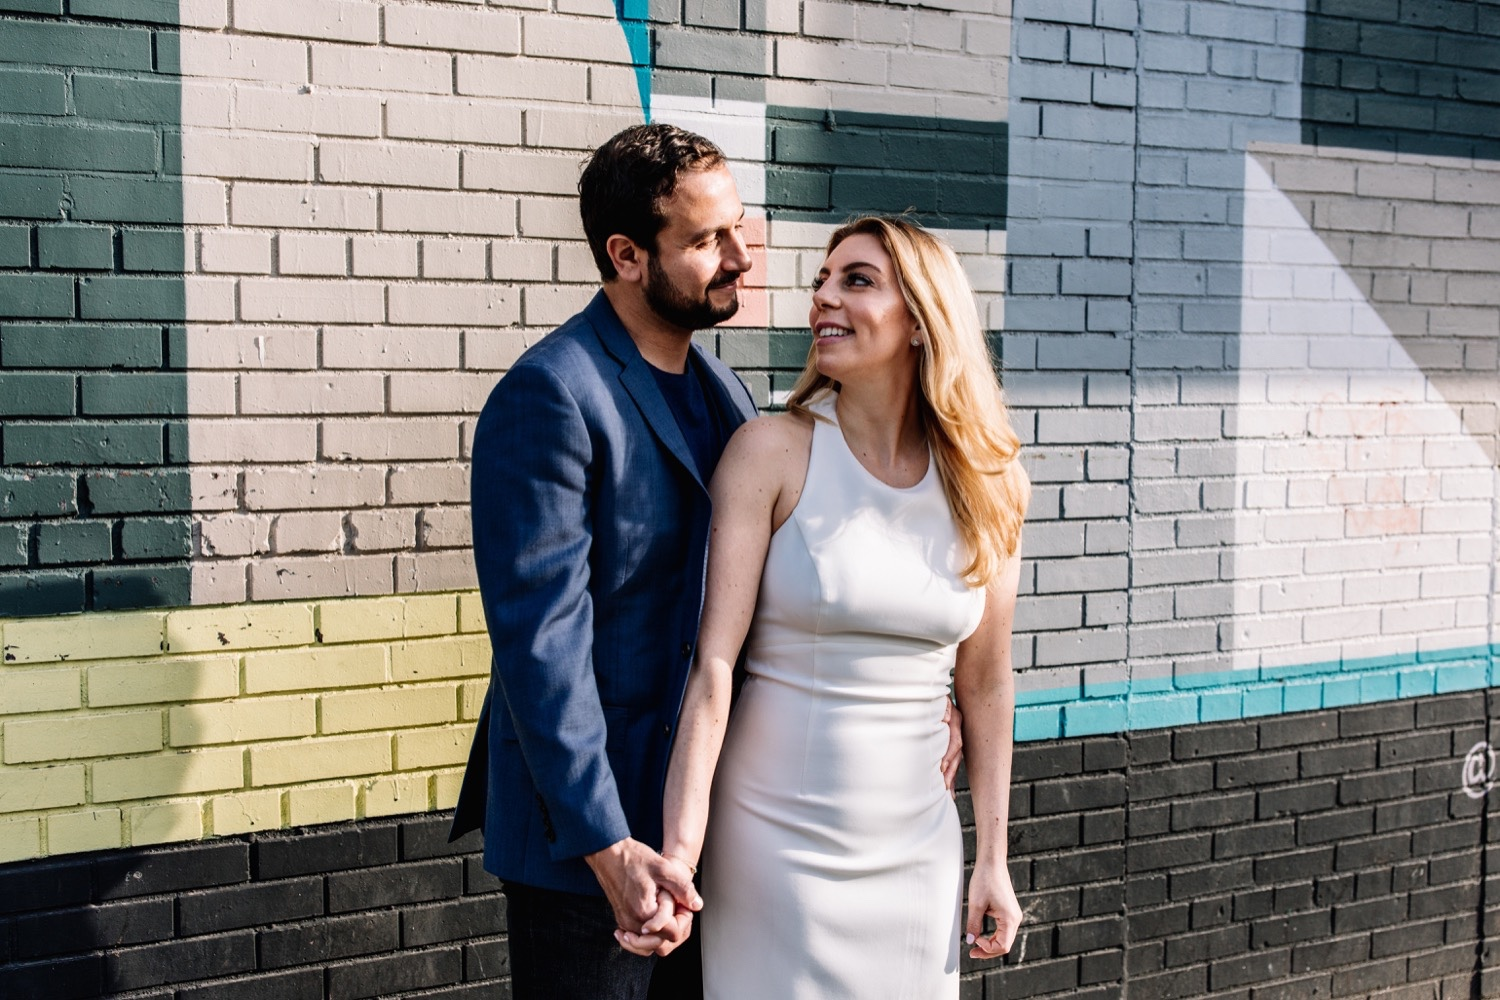 Brooklyn Mural Engagement Photos - NYC Wedding Photographer